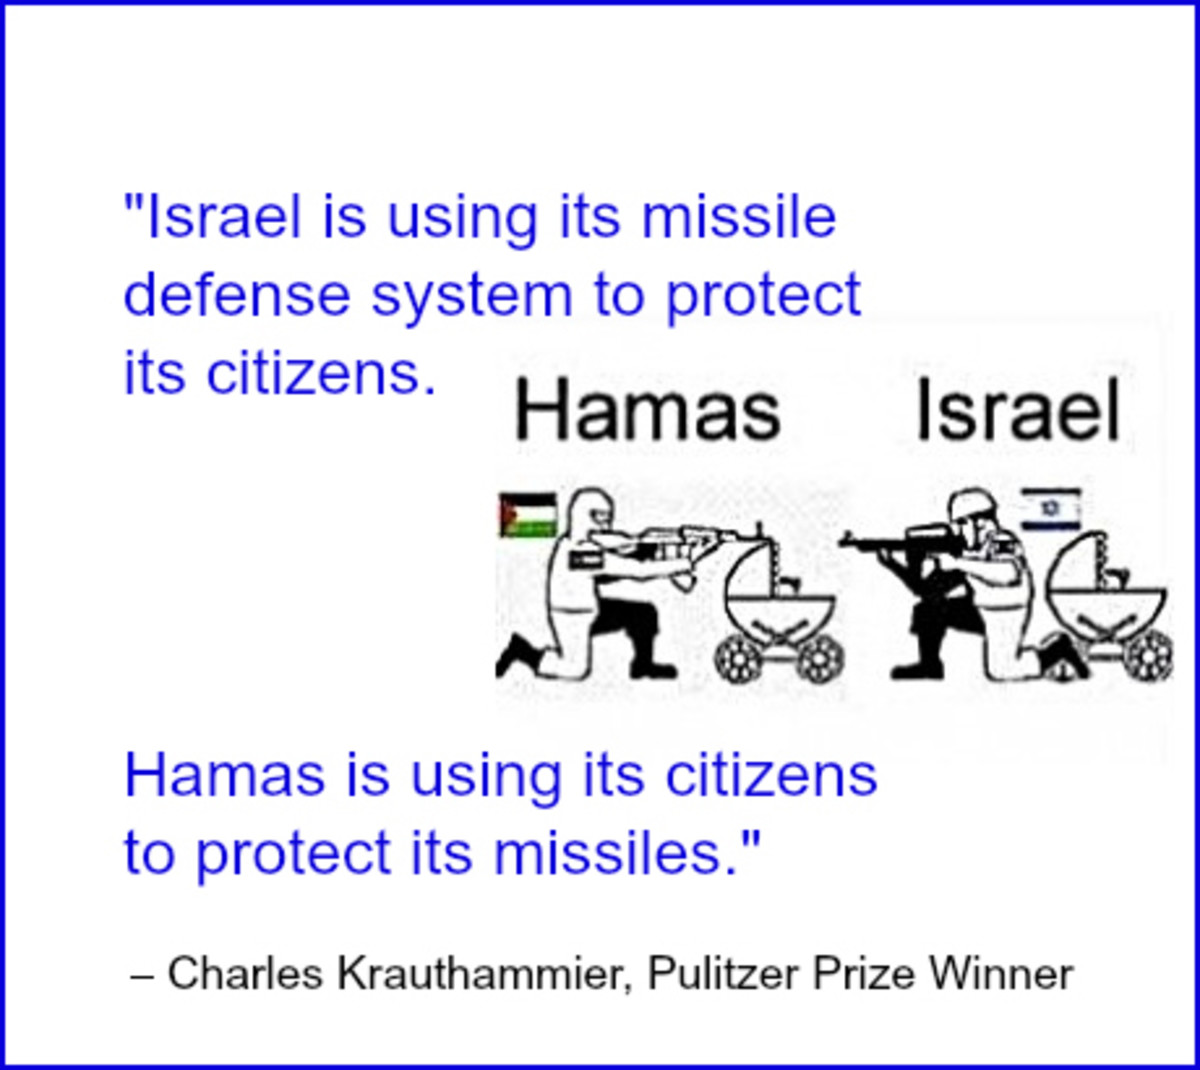 """Israel is using its missile defense system to protect its citizens; Hamas is using its citizens to protect its missiles"" quotation from Charles Krauthammier"